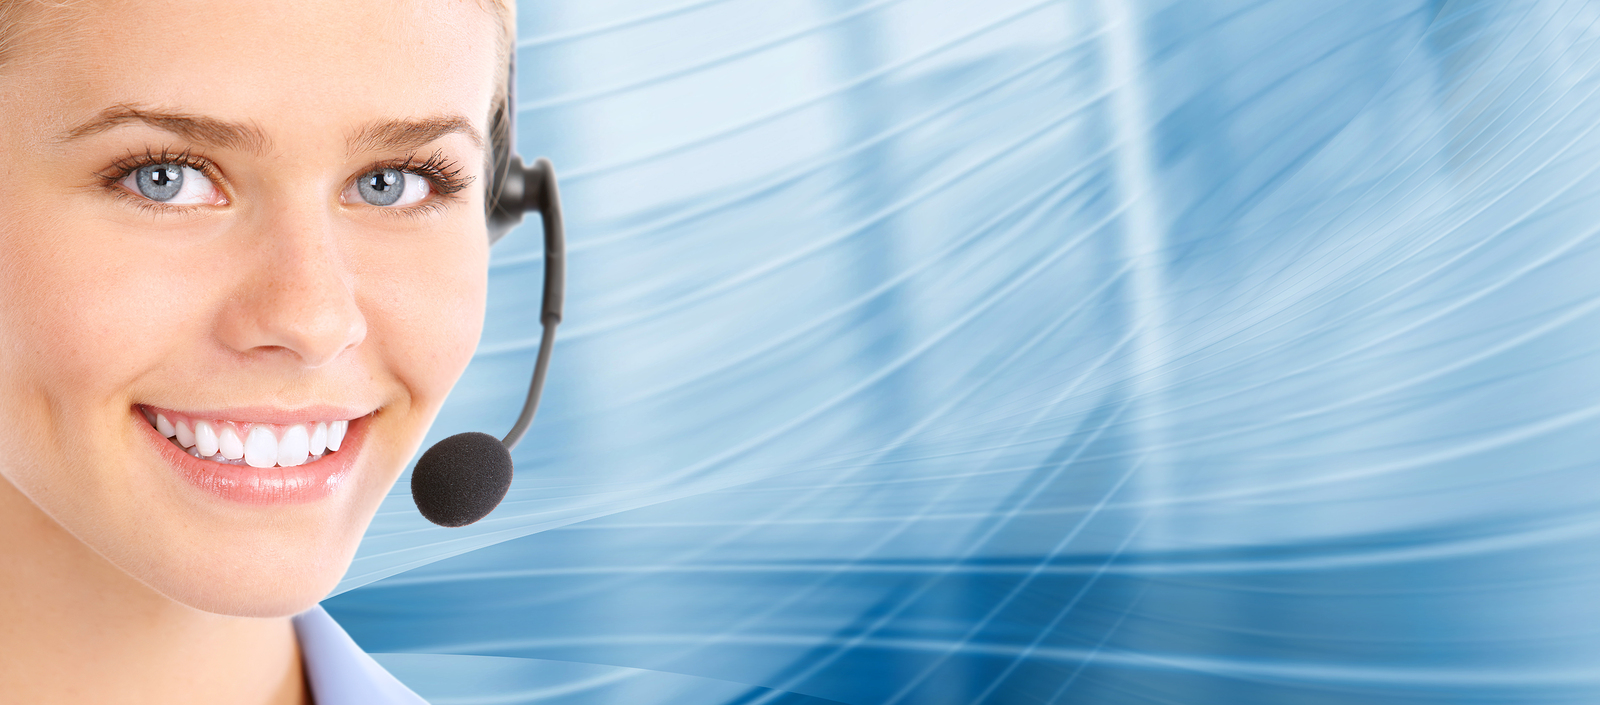 bigstock-Call-Center-Customer-Support--8443132.jpg